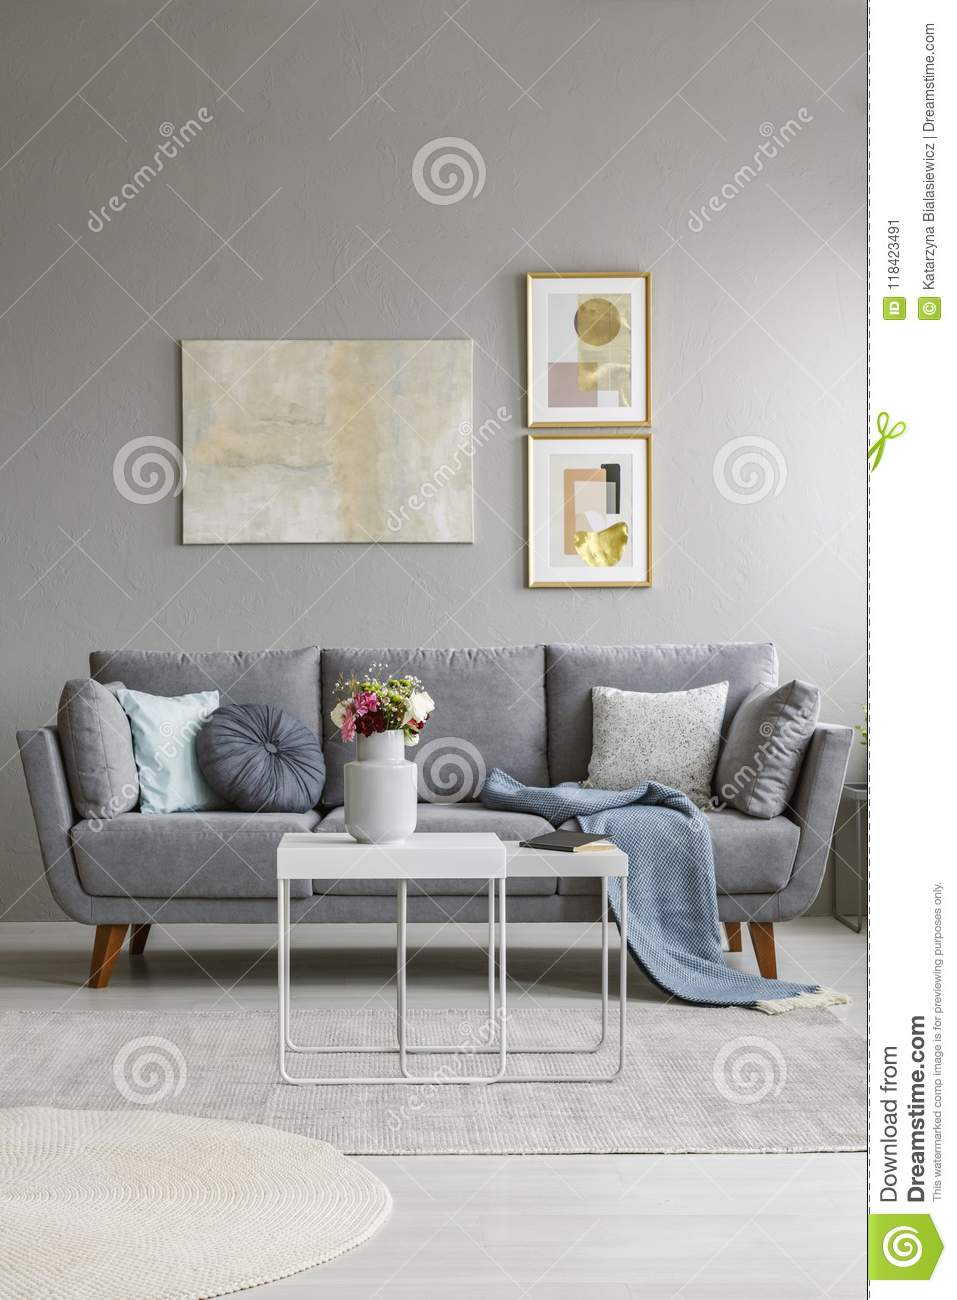 Fabulous Real Photo Of A Grey Couch With Cushions And Blanket Machost Co Dining Chair Design Ideas Machostcouk